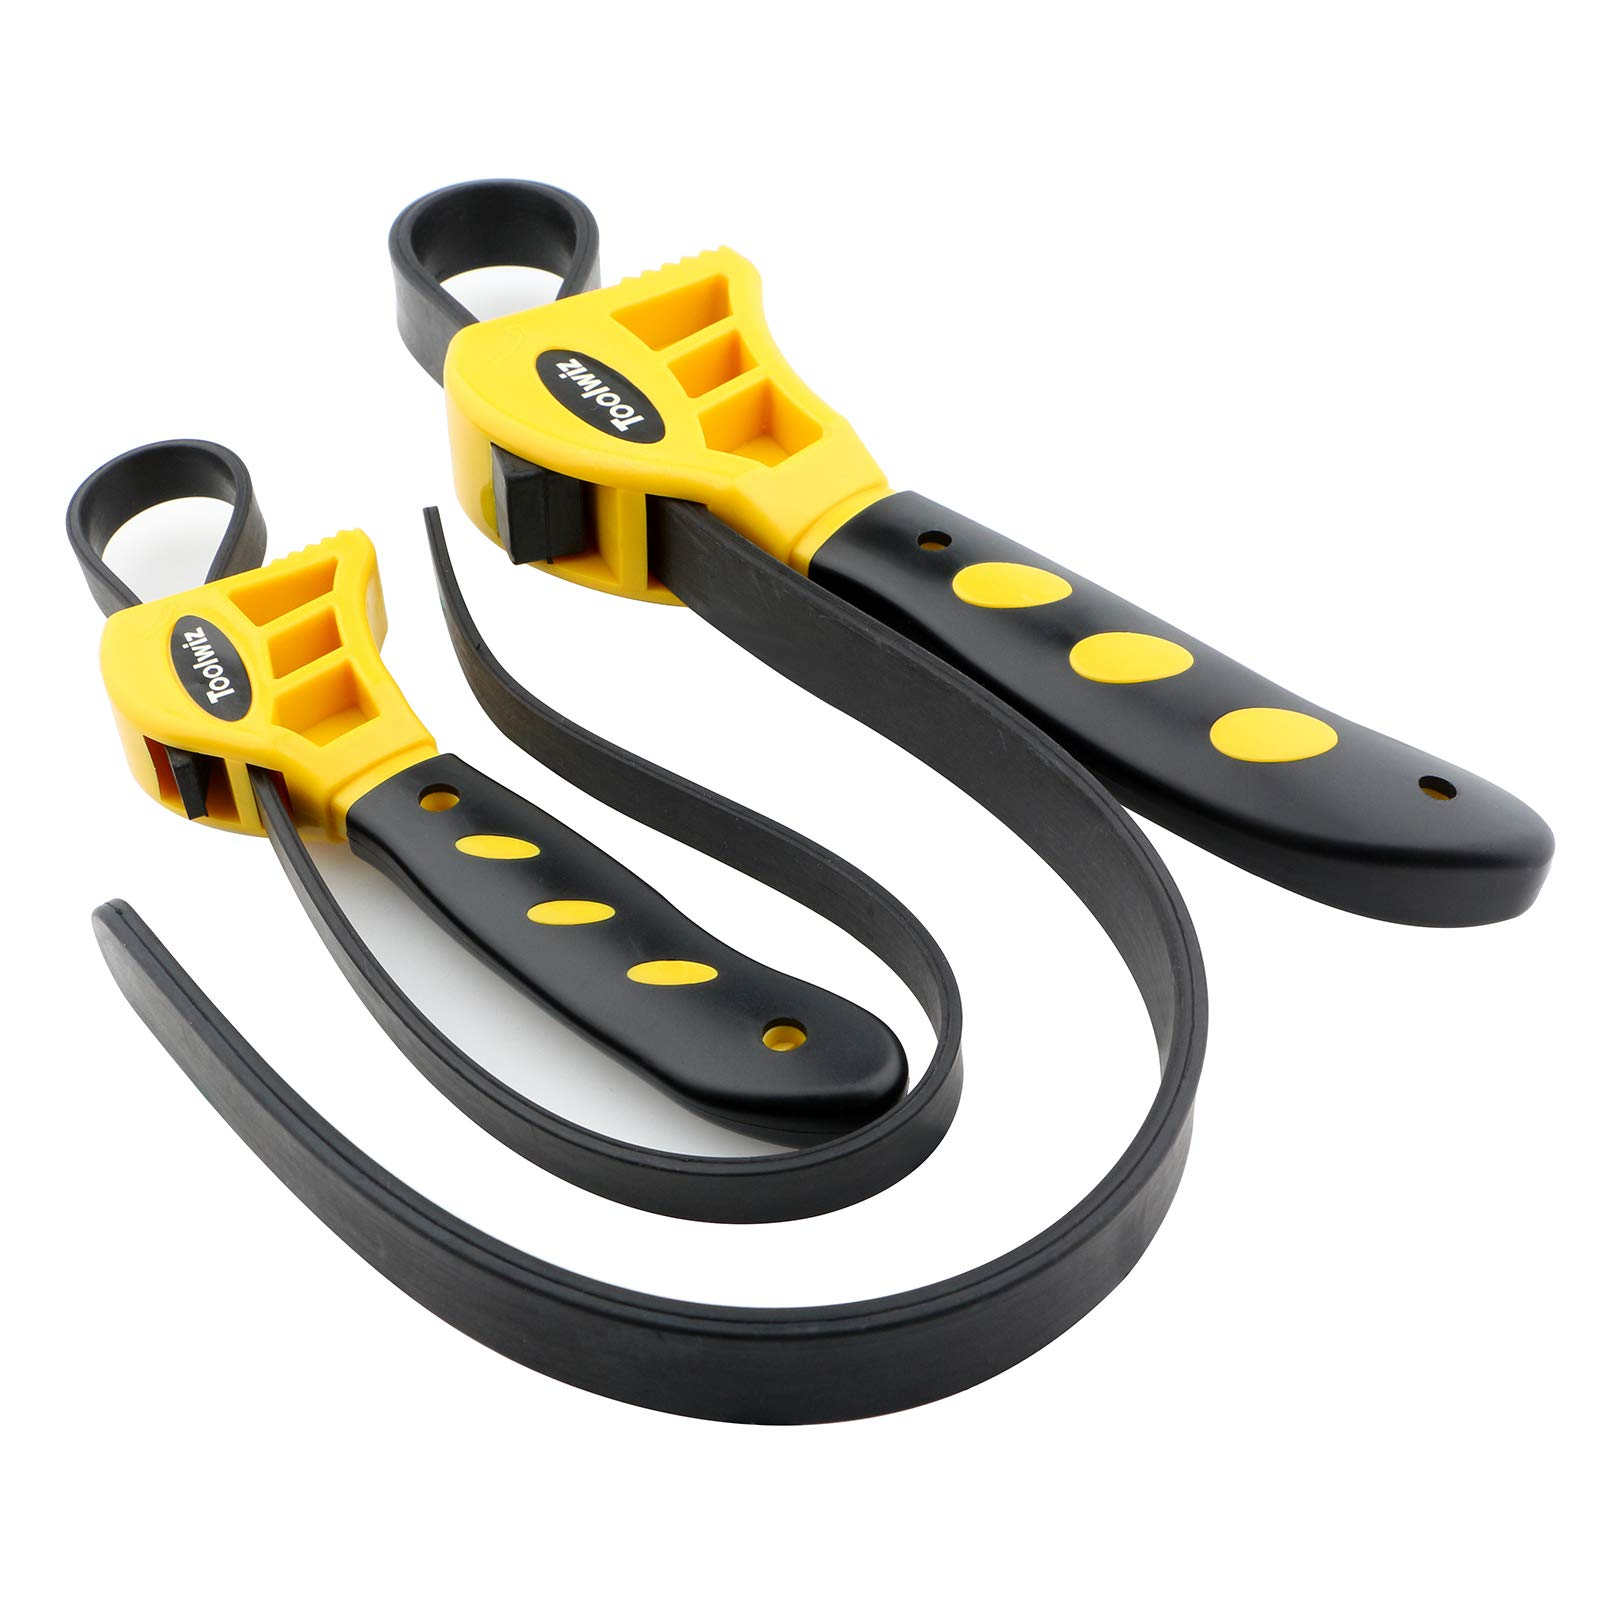 Toolwiz Rubber Strap Wrench - Set of 2pcs Jar Opener, Pipe Wrench, Oil Filter Wrenches Used by DIY, Mechanics, Plumbers, 19-11/16'' and 23-5/8'' (Black on Yellow) by Toolwiz